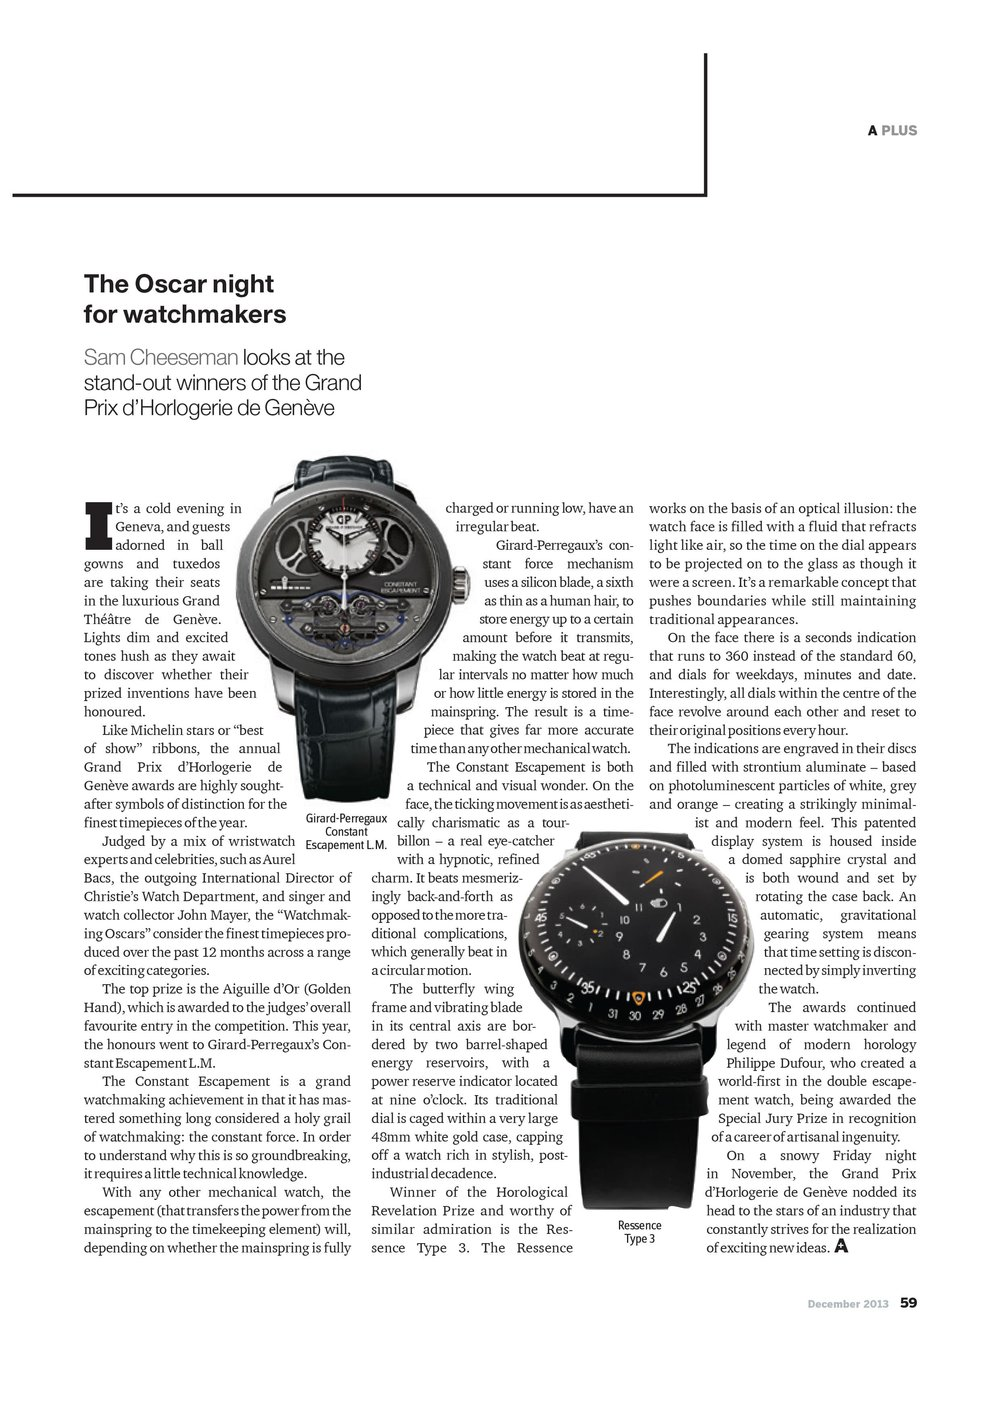 Articles-05_0005_Dec_full-pages-deleted-min.jpg